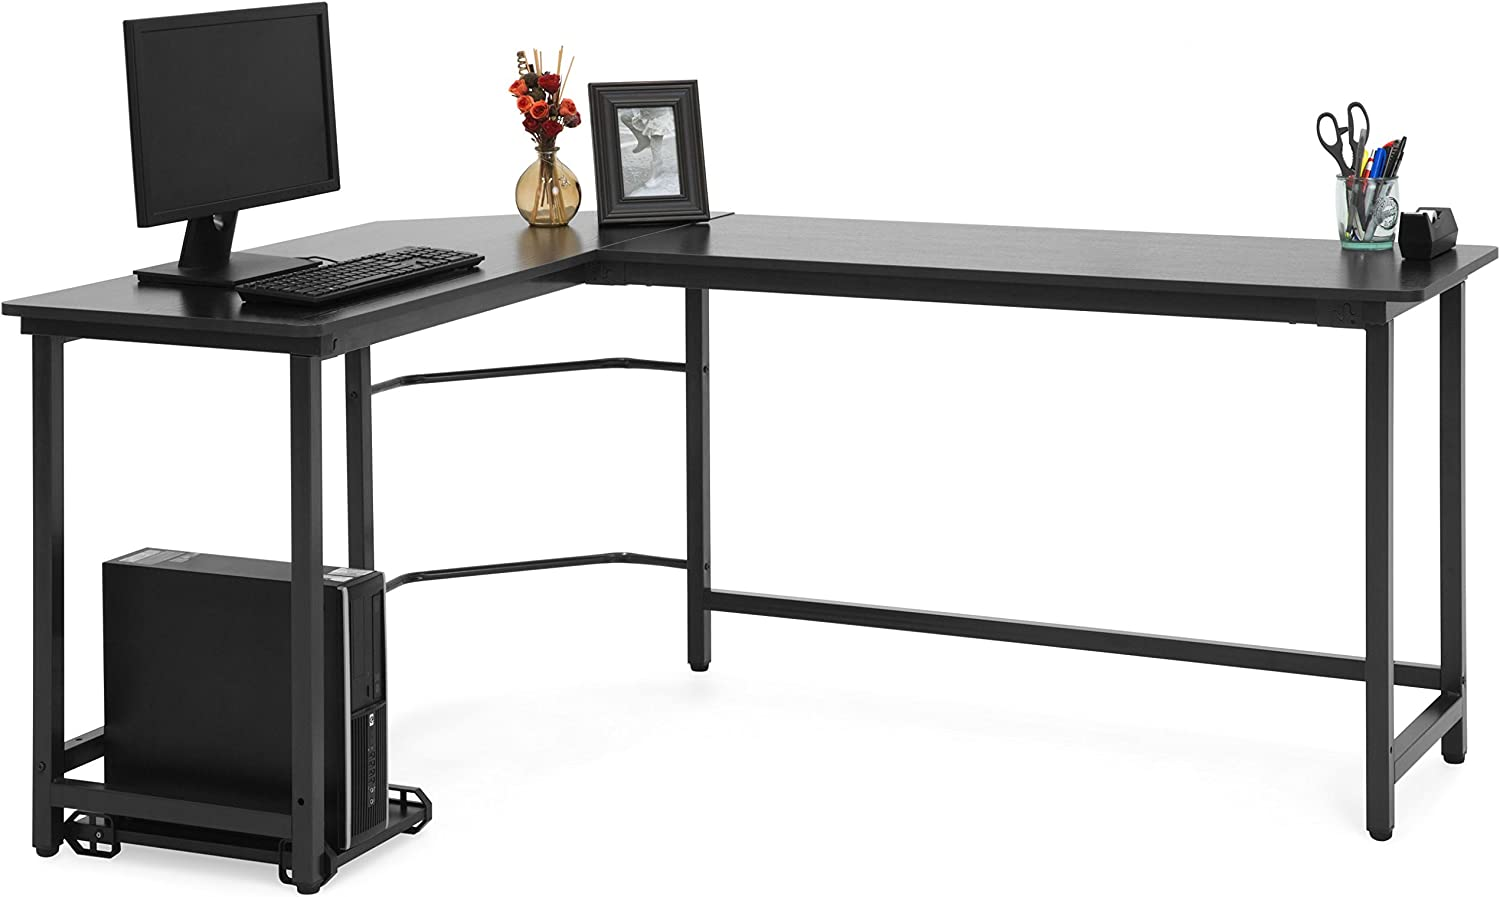 Best Choice Products Modern L-Shaped Corner Desk w/CPU Stand - Black